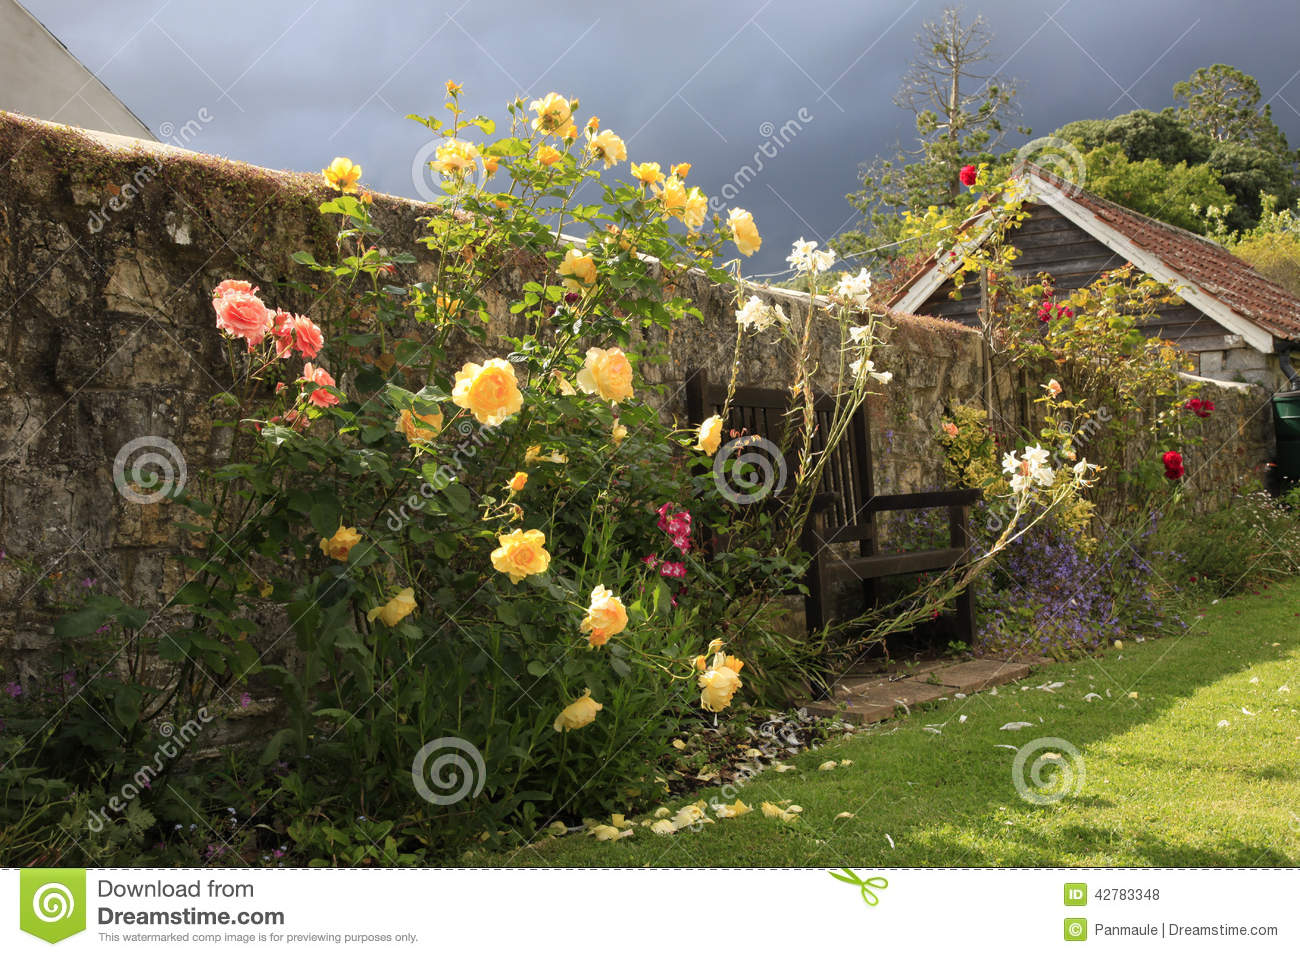 A Flowering Pink And Yellow Bushes Blooming In An English Country Garden With Approaching Rain Storm